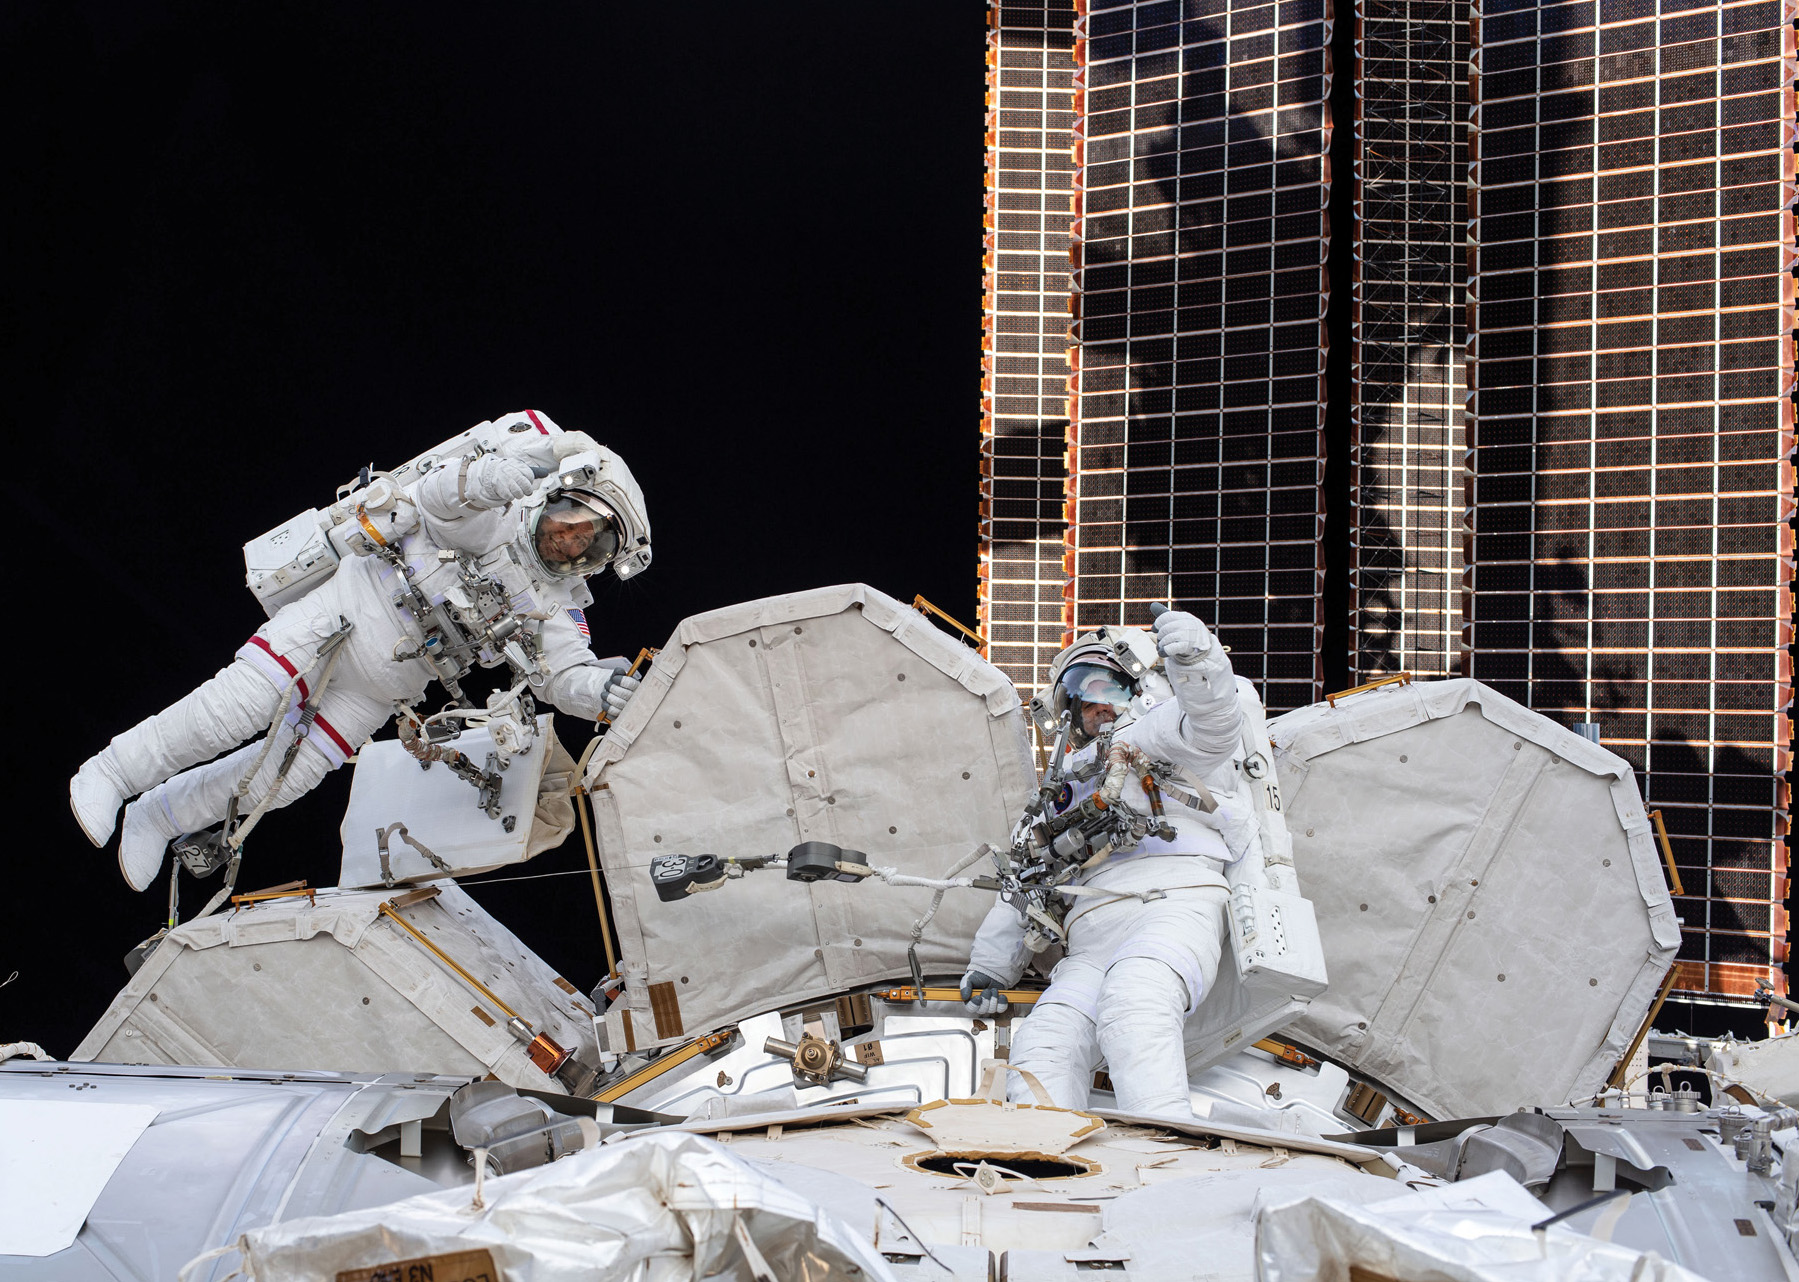 Picture of two astronauts floating alongside a space station